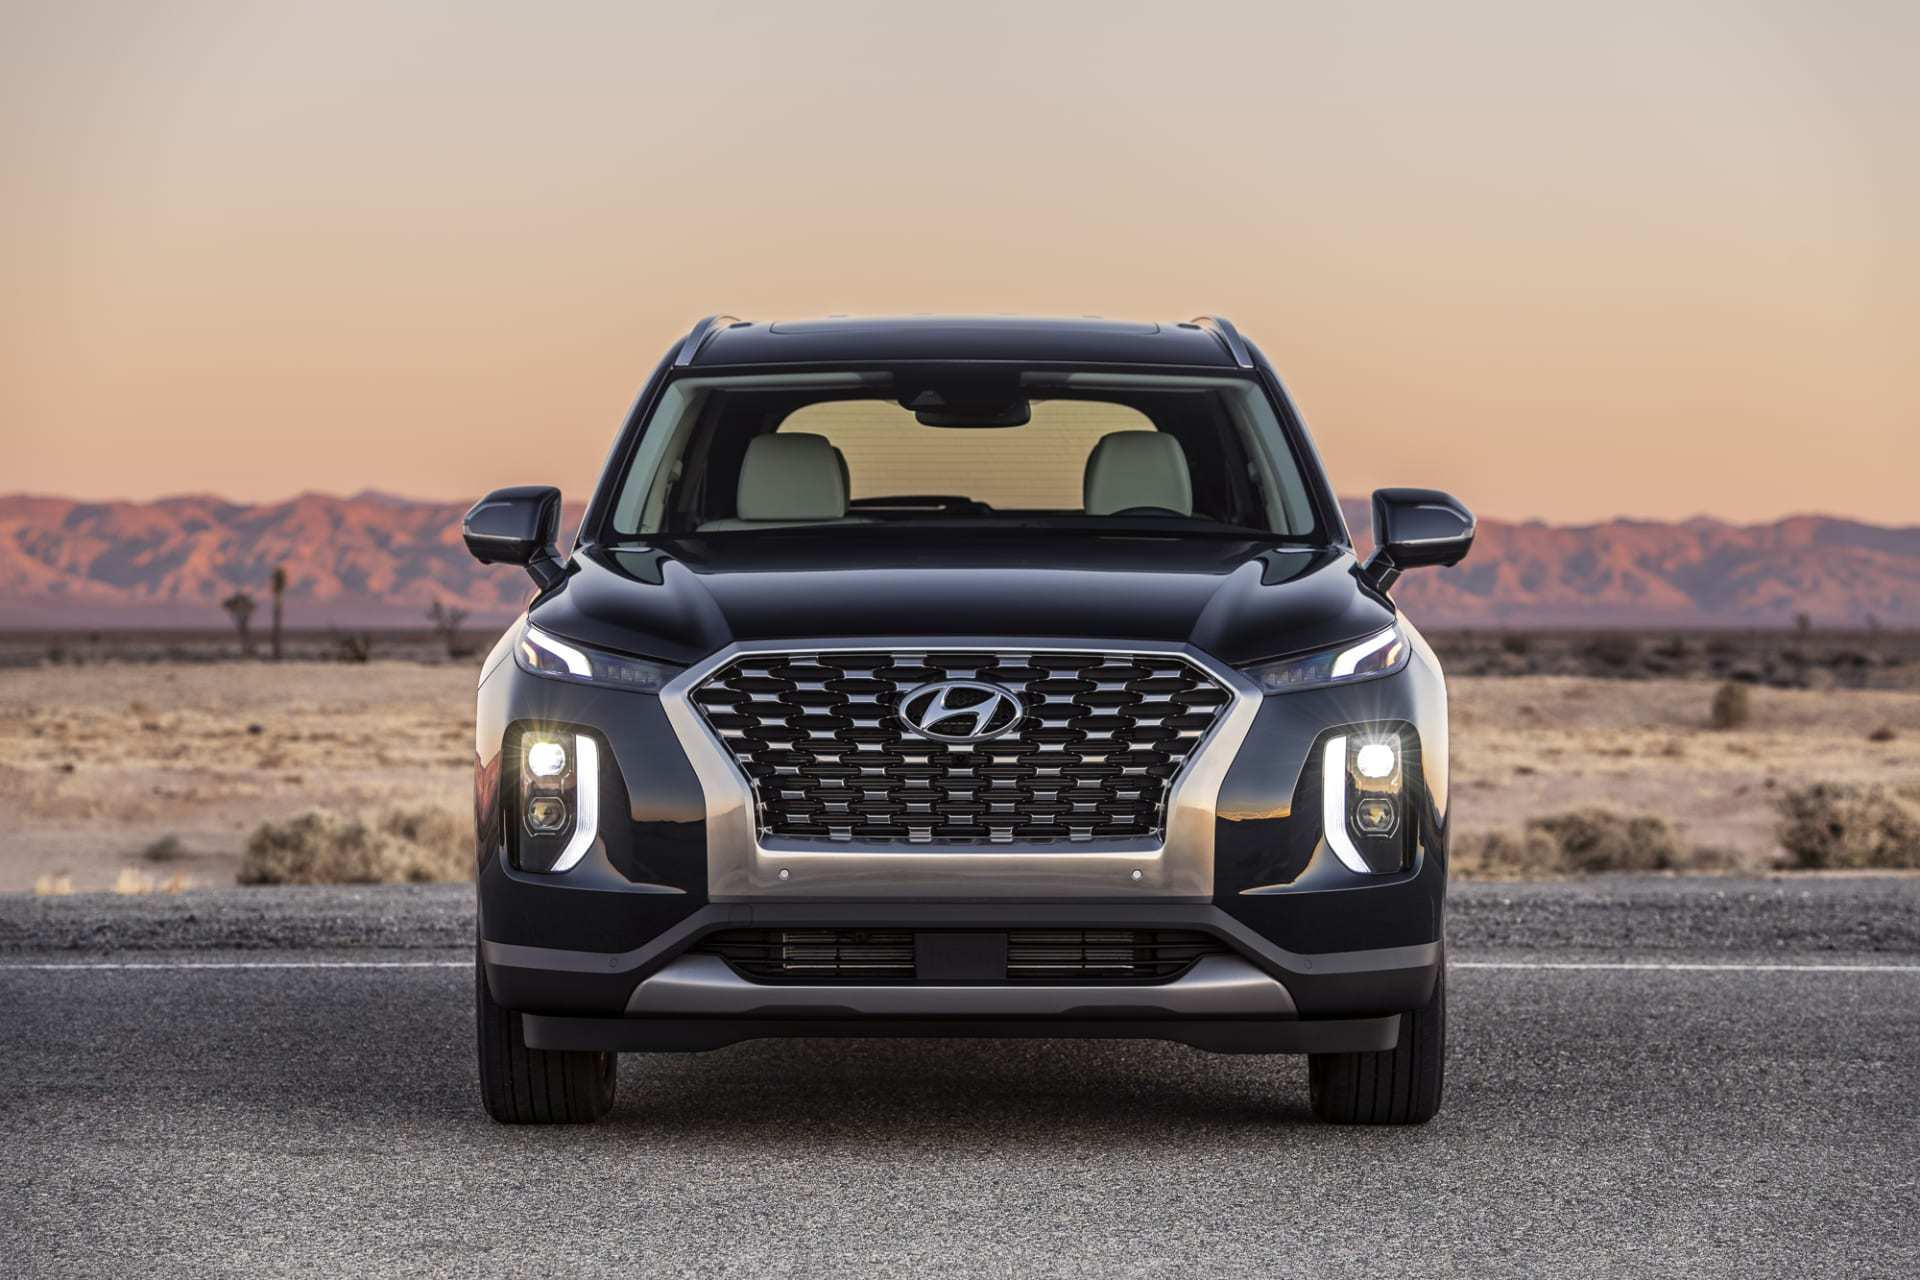 58 All New When Will The 2020 Hyundai Palisade Be Available Research New